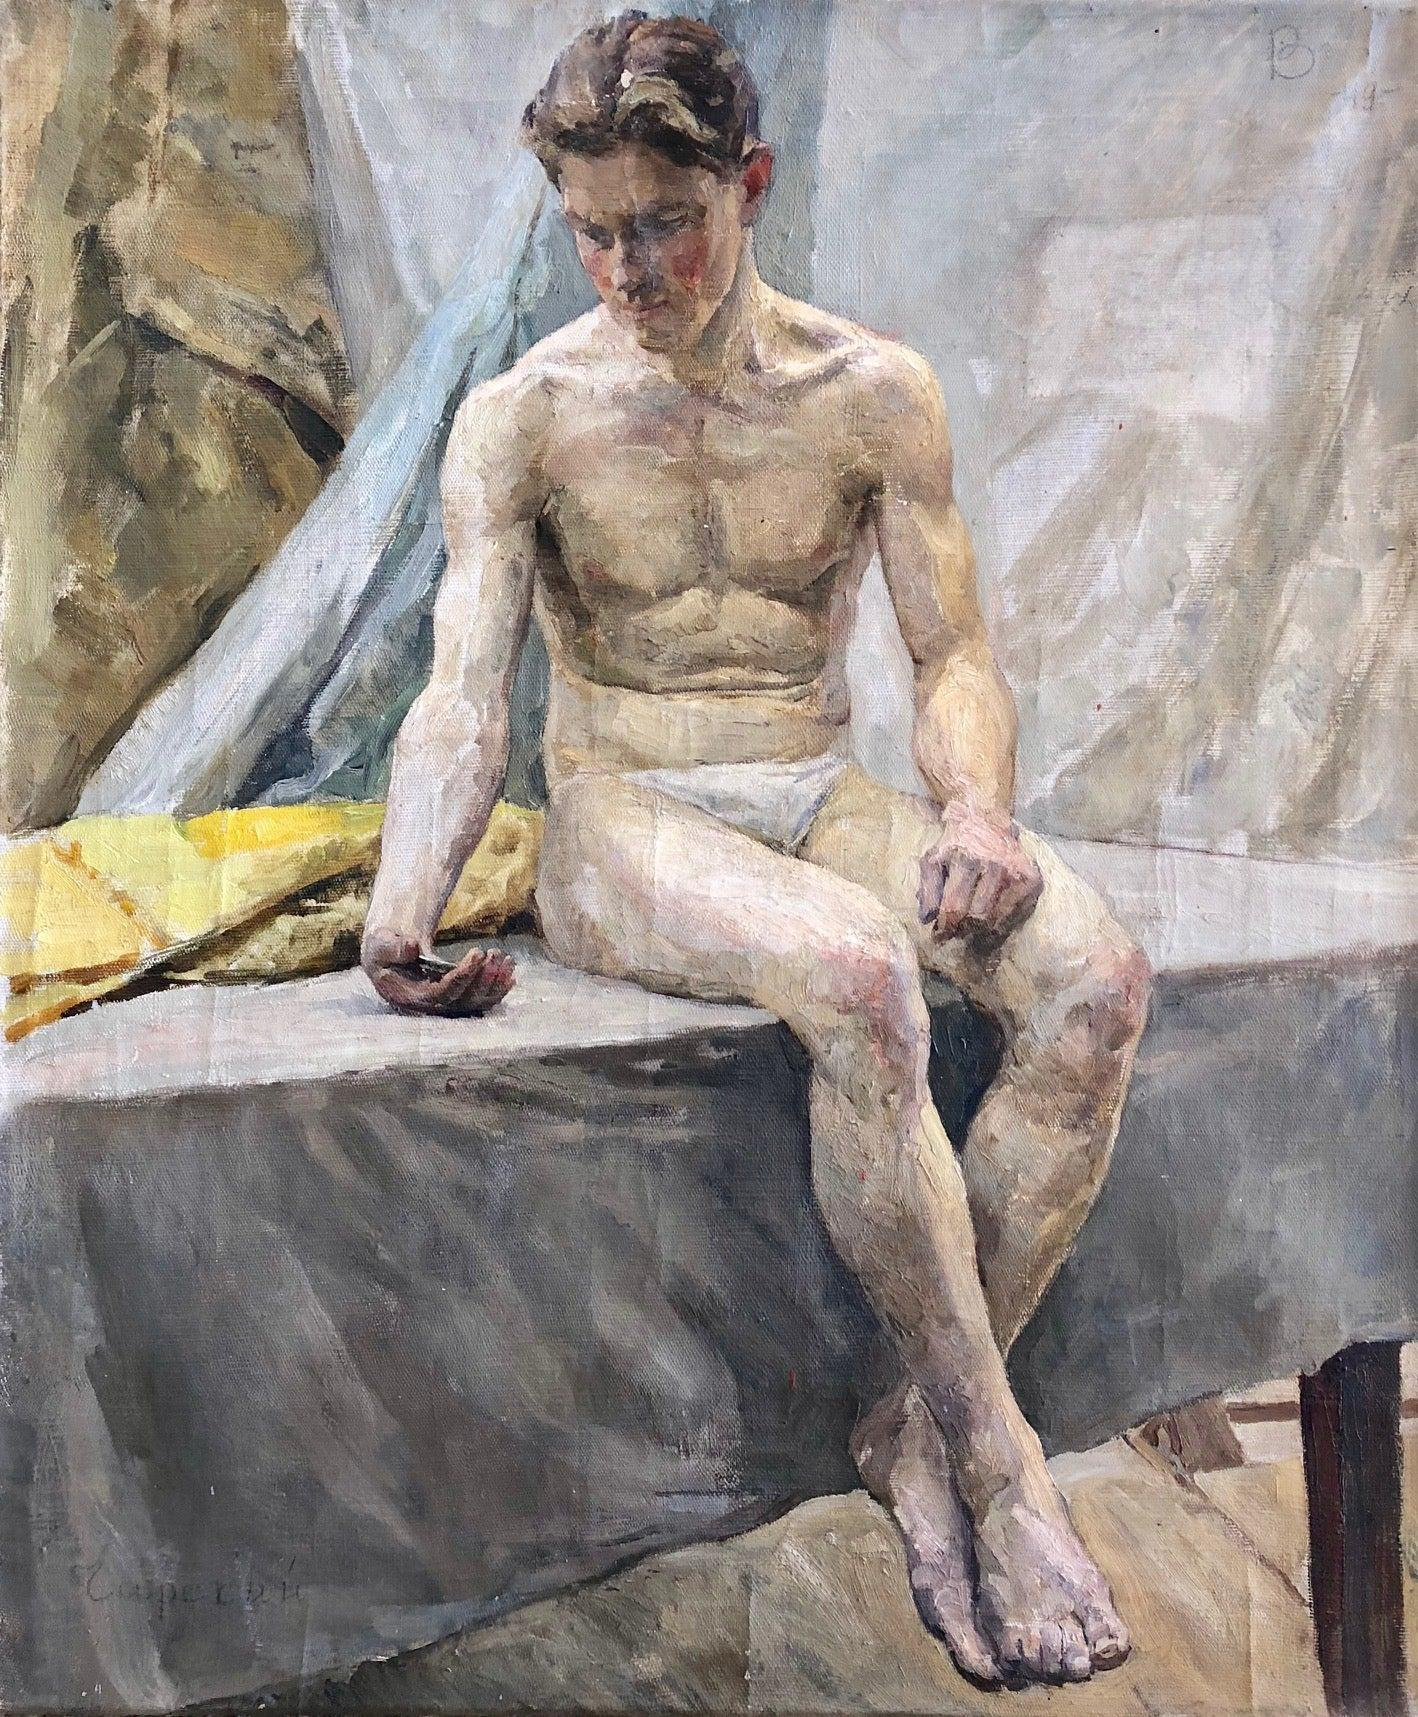 1949 Soviet Era Realism Nude Original Portrait Oil Painting of a Young Man 29x24